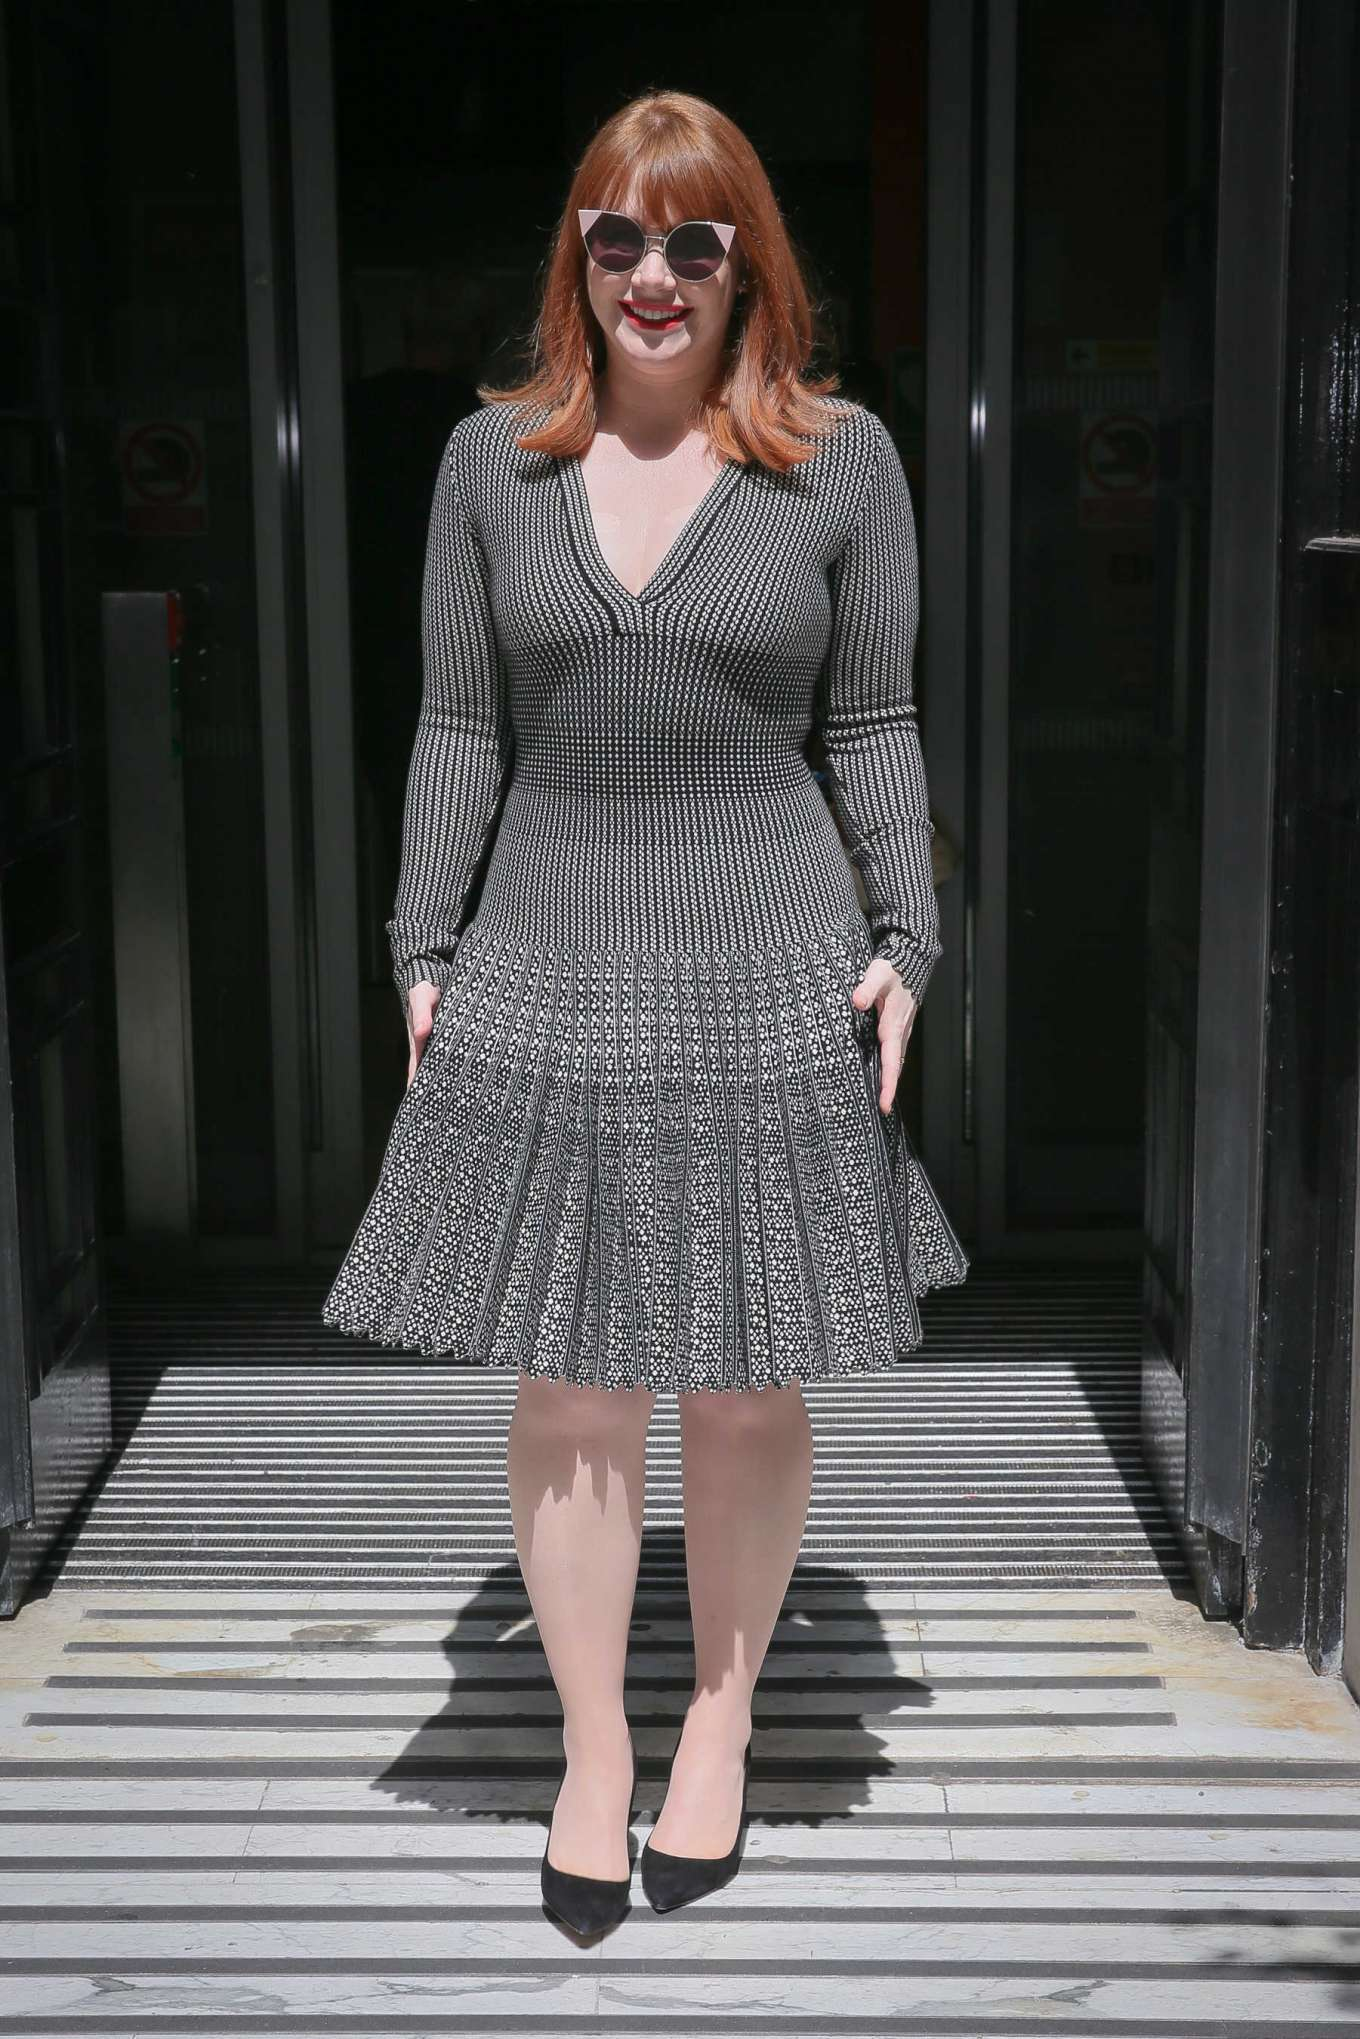 Bryce Dallas Howard 2019 : Bryce Dallas Howard: Out and about in London-01